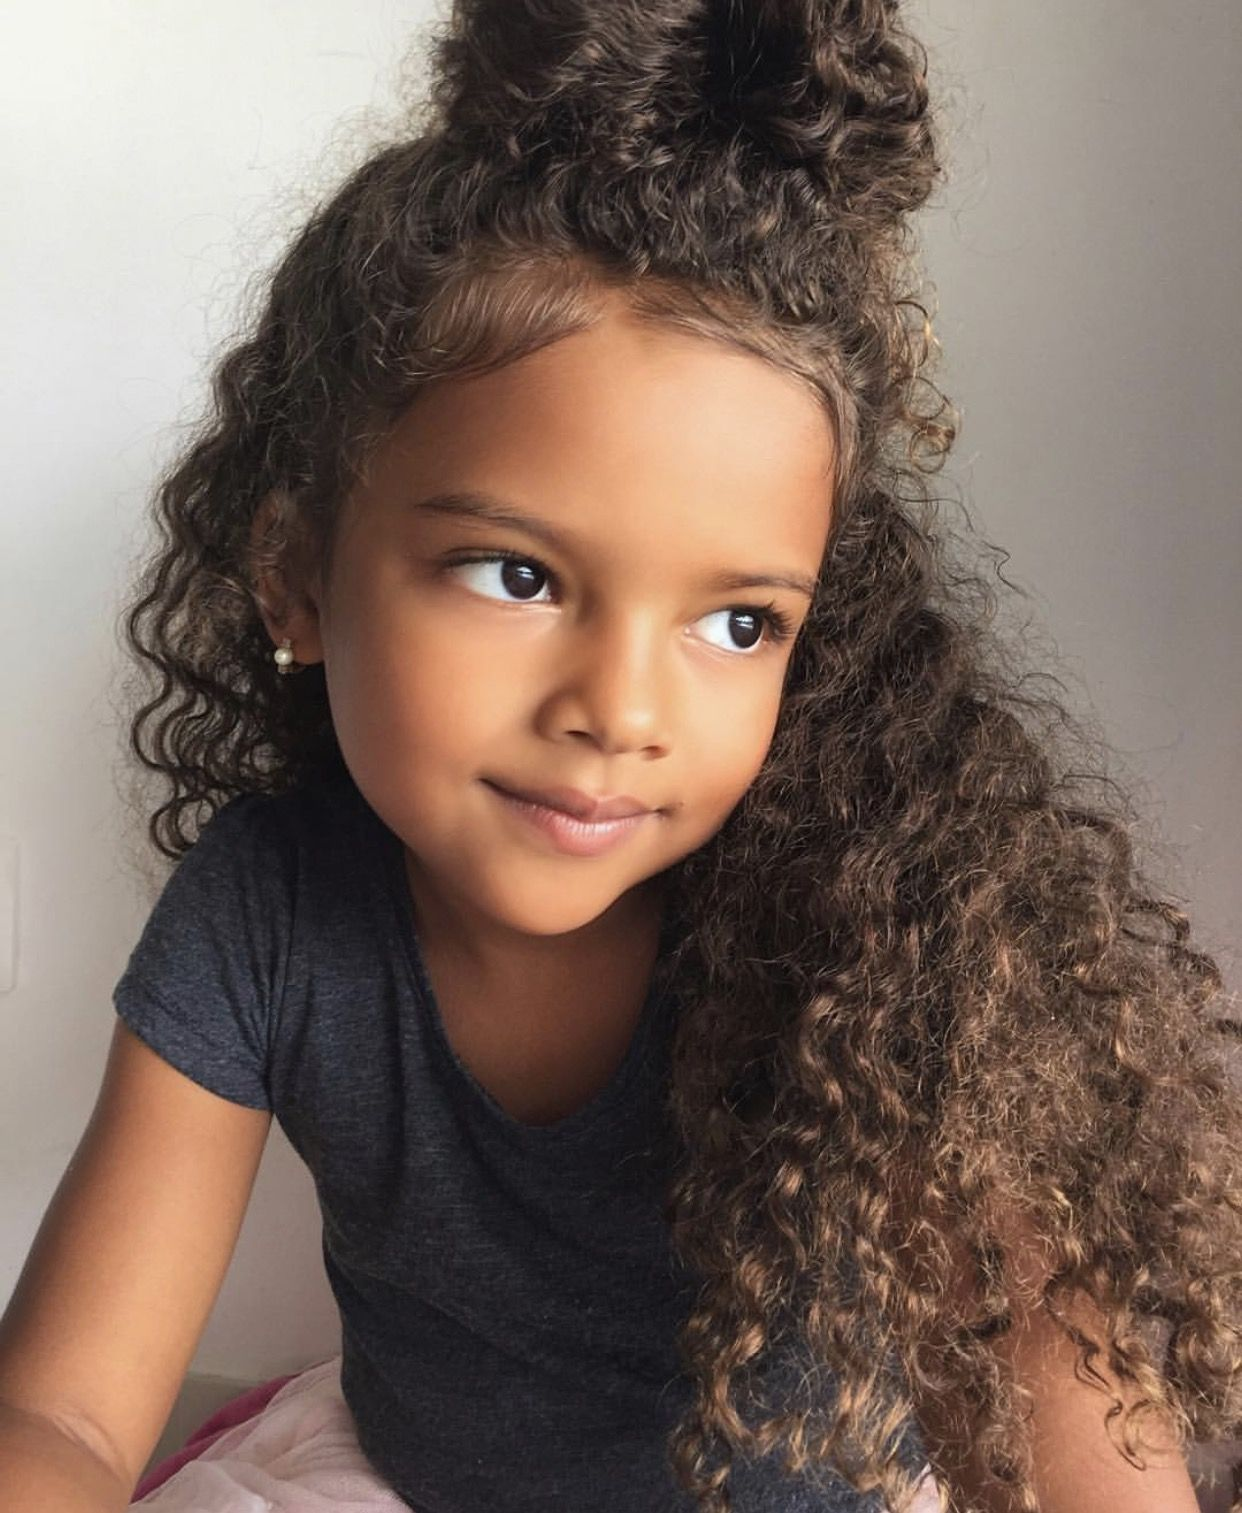 pin by diana rodriguez on •|my girl✨ | curly hair styles